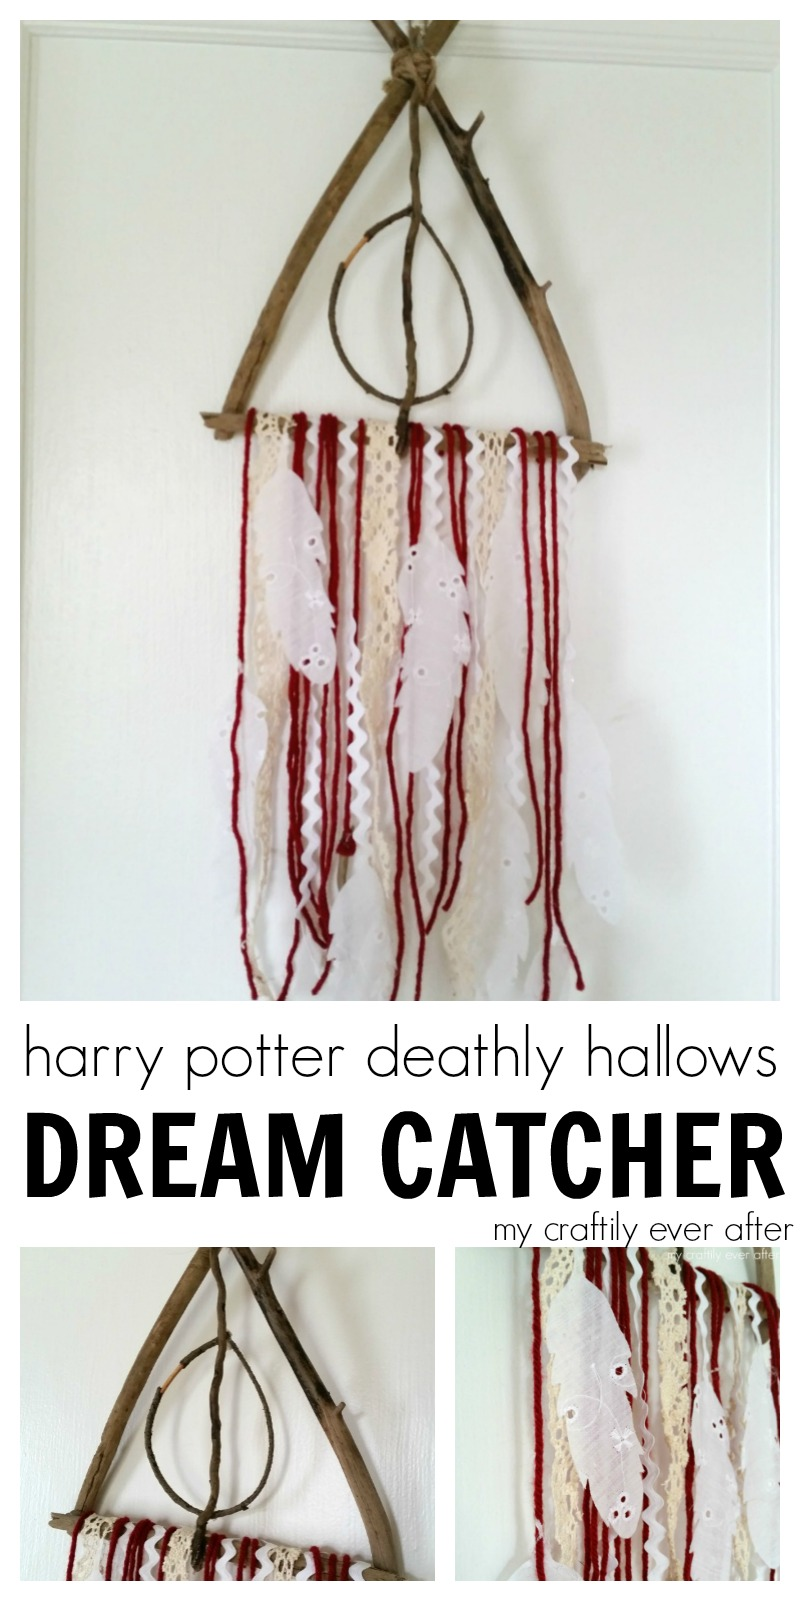 harry potter deathly hallows dream catcher